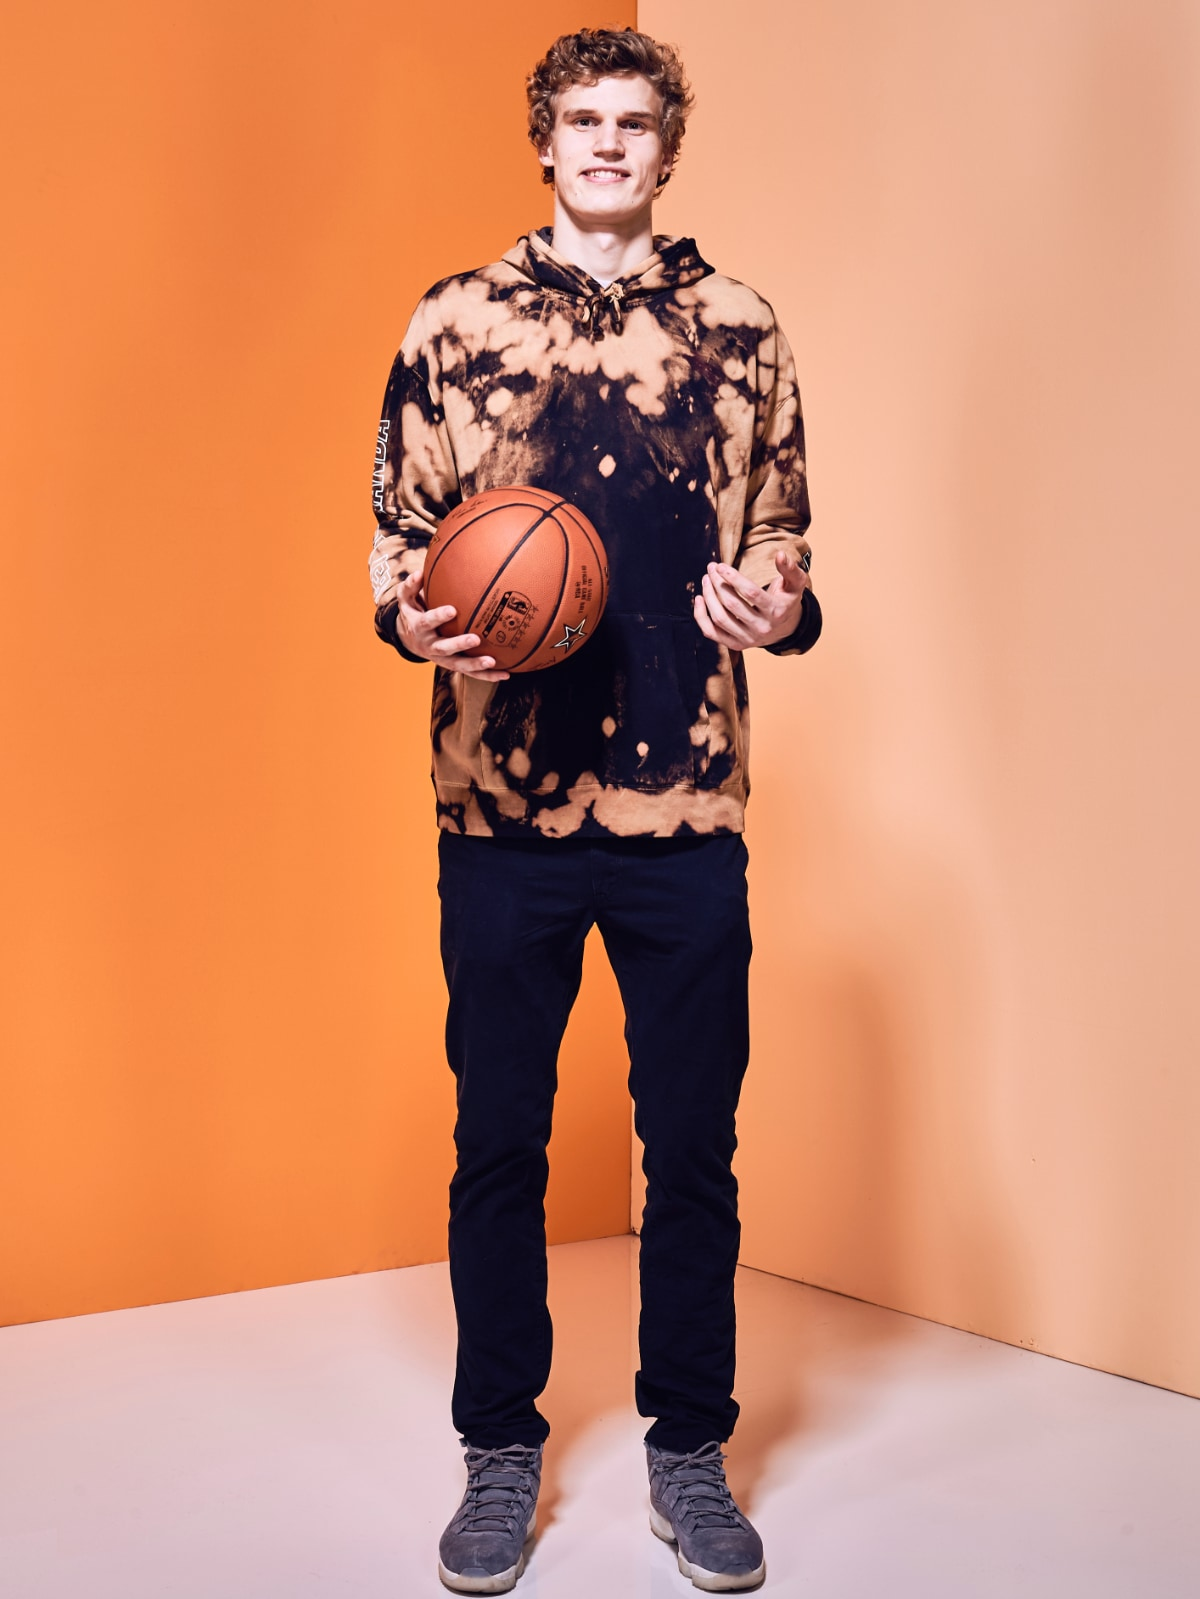 Lauri Markkanen poses prior to All-Star Weekend